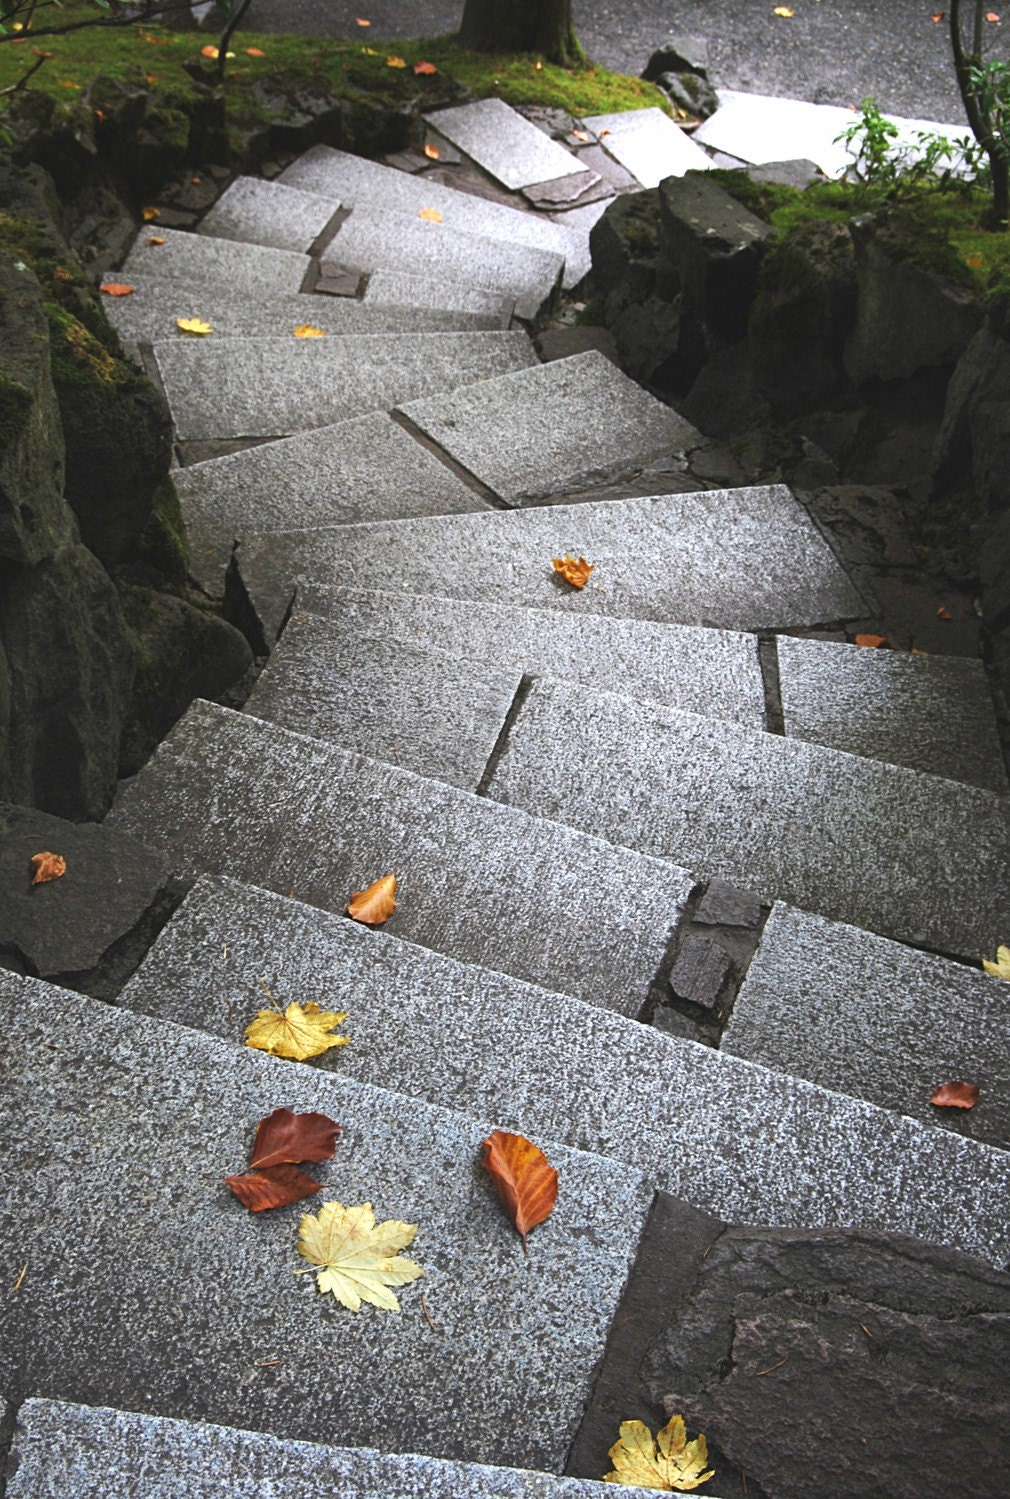 Steps Japanese Garden Fine Art  Digital Photographic Print 11x17 - sueolsonphoto